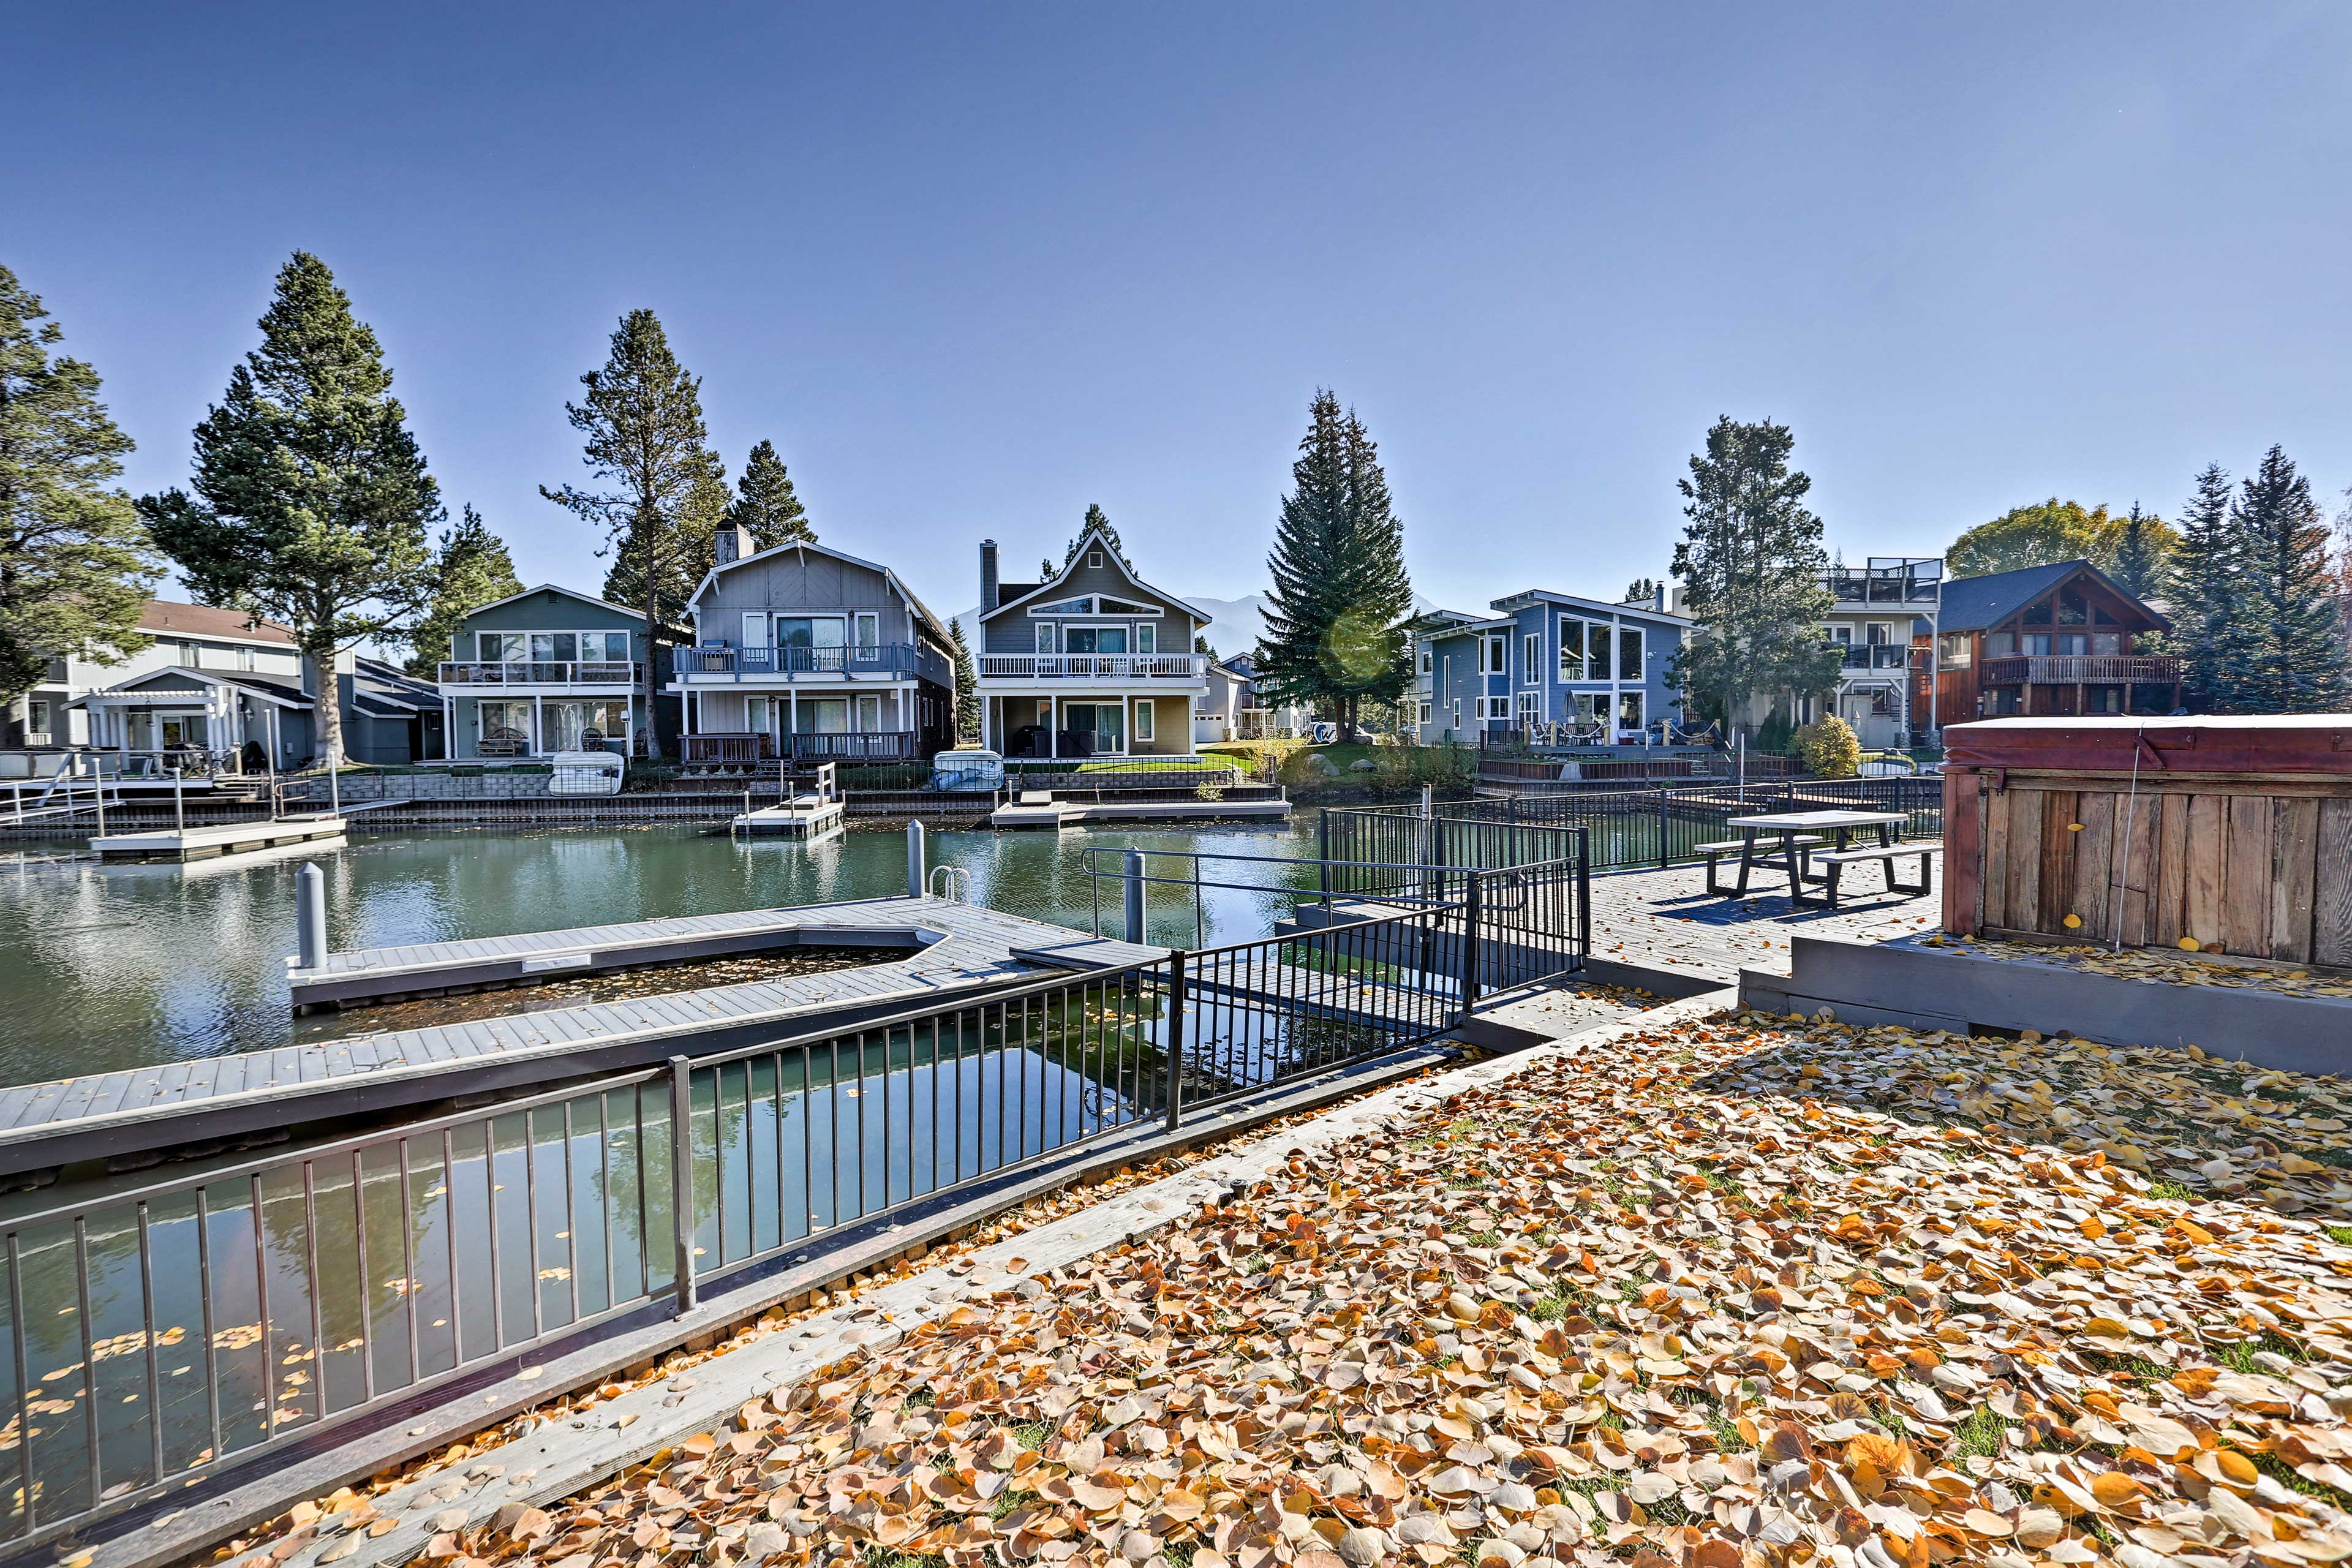 You'll love being right by the lake!